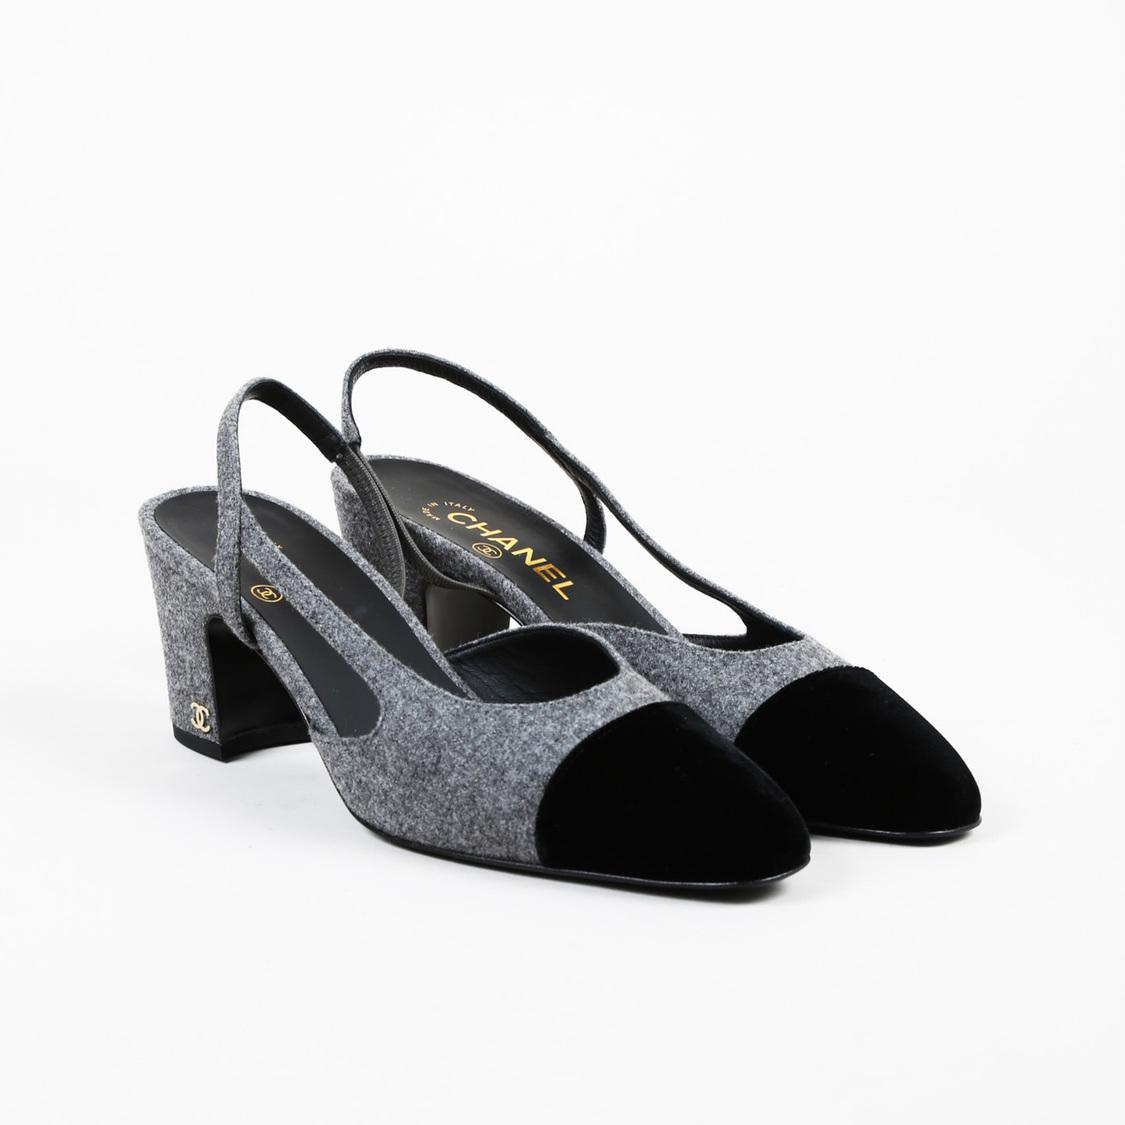 687a4148e3d3 Chanel Gray Wool Black Velvet Cap Toe Pumps in Black - Lyst